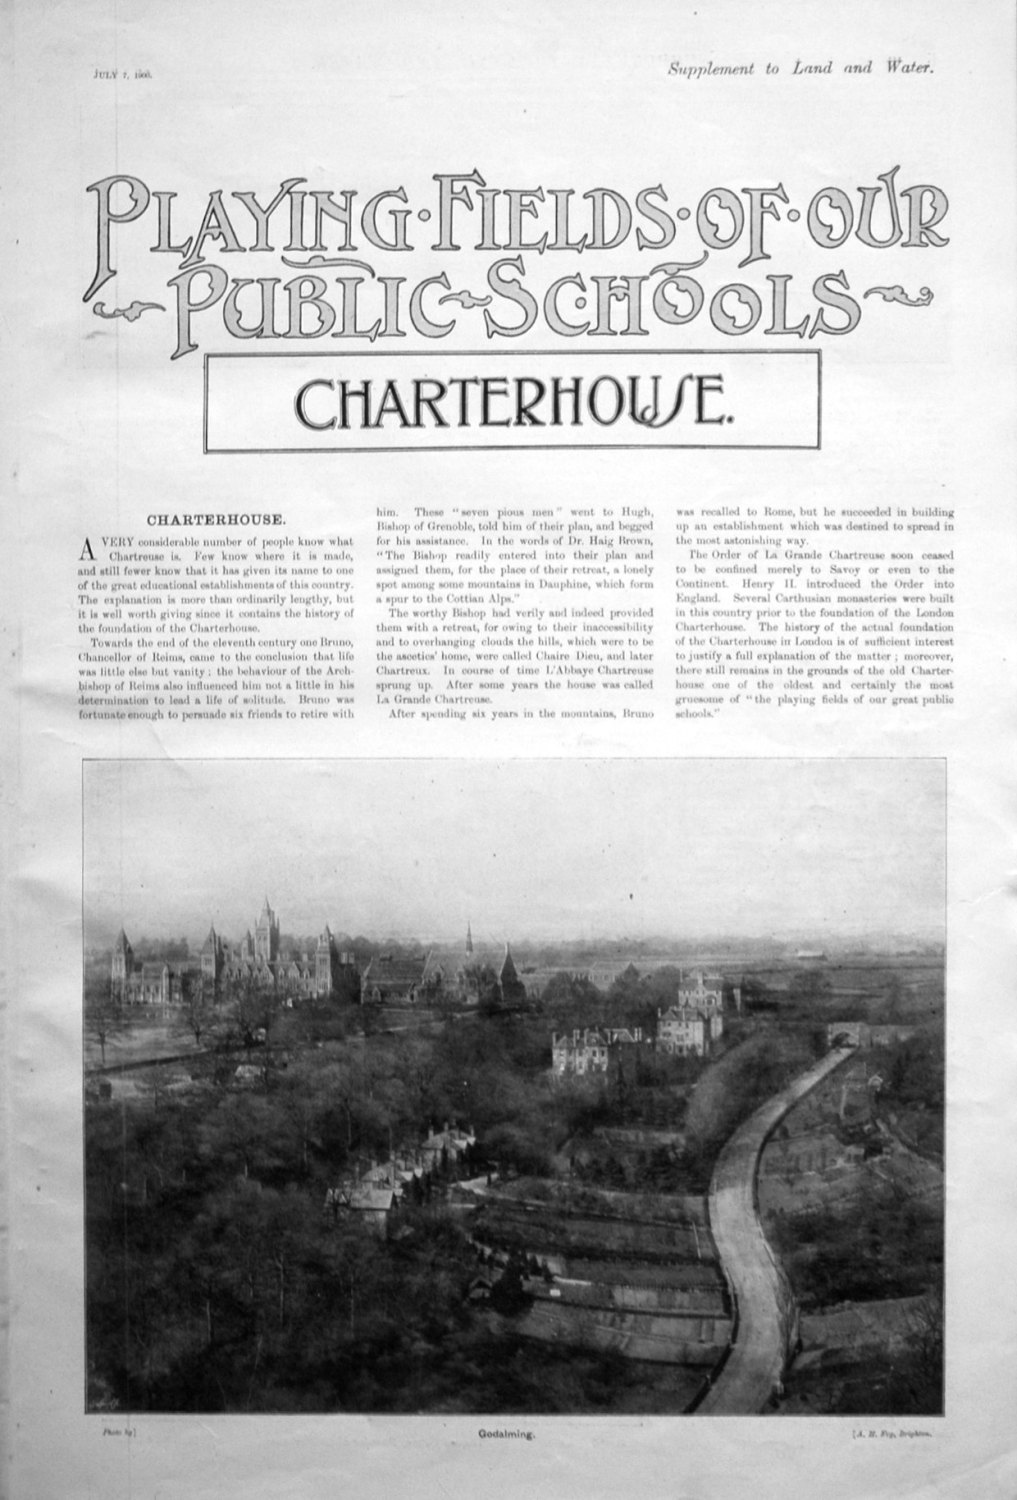 Playing Fields of our Public Schools. July 7th 1900.